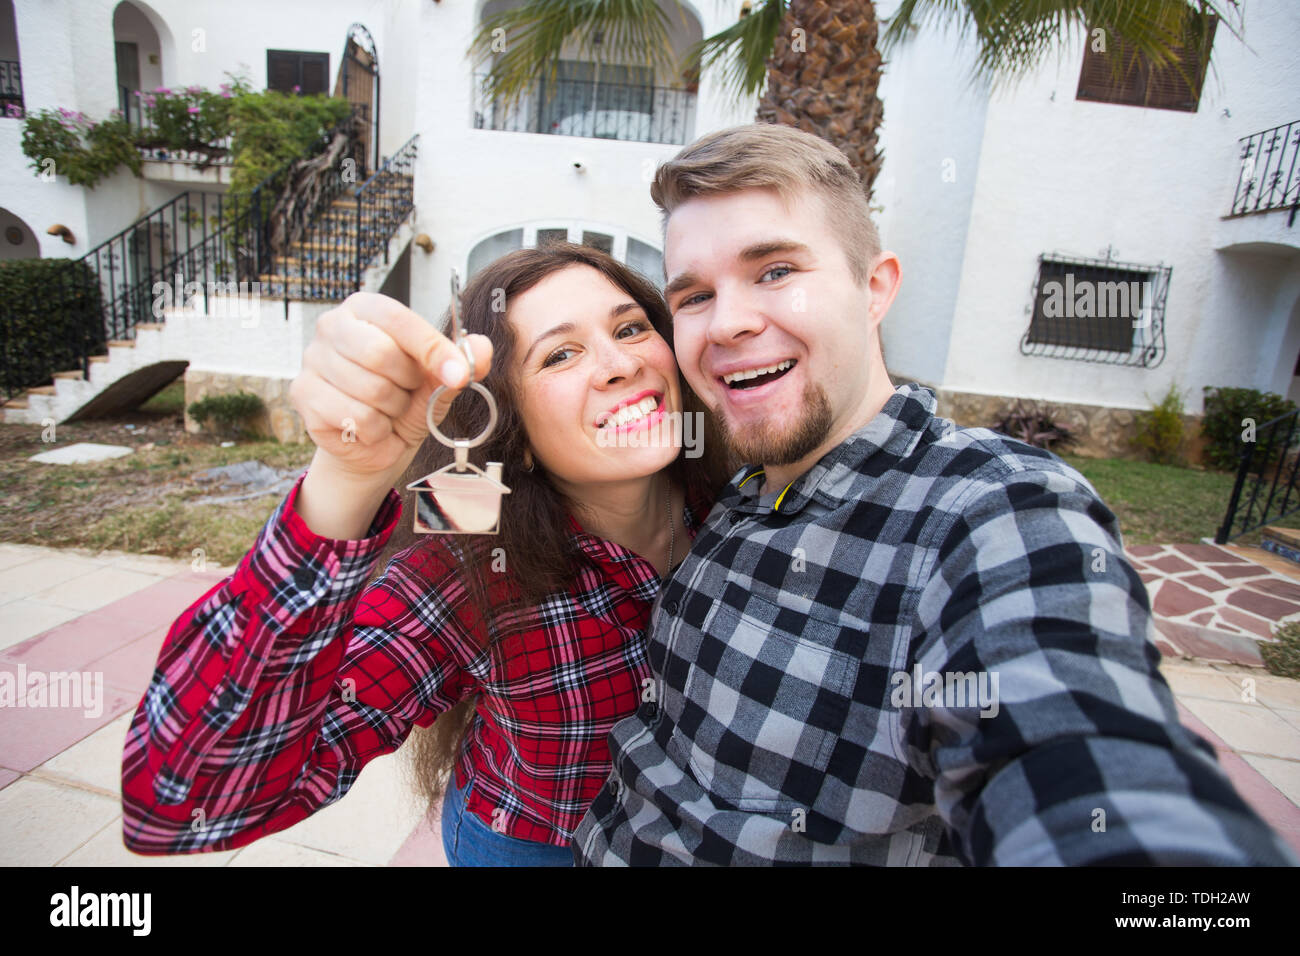 Real estate and property concept - Happy couple holding keys to new home and house miniature - Stock Image